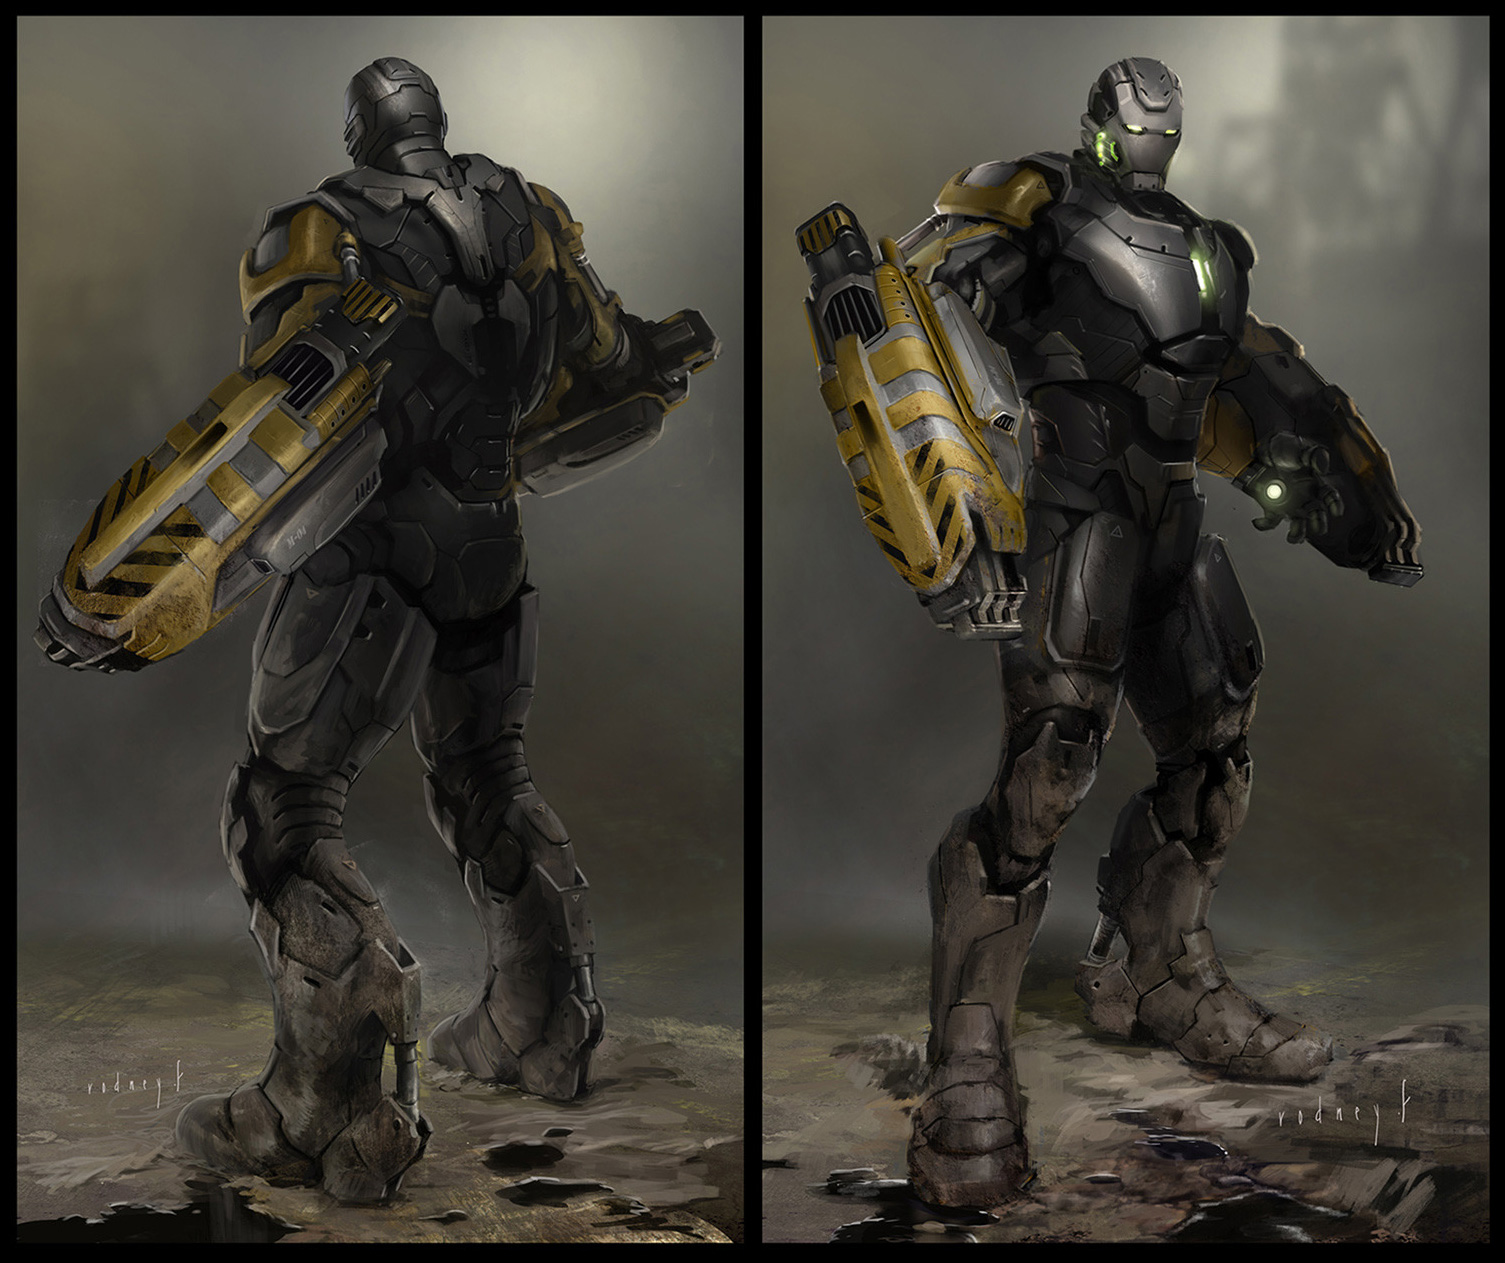 Iron man 3 concept art and illustrations by rodney fuentebella